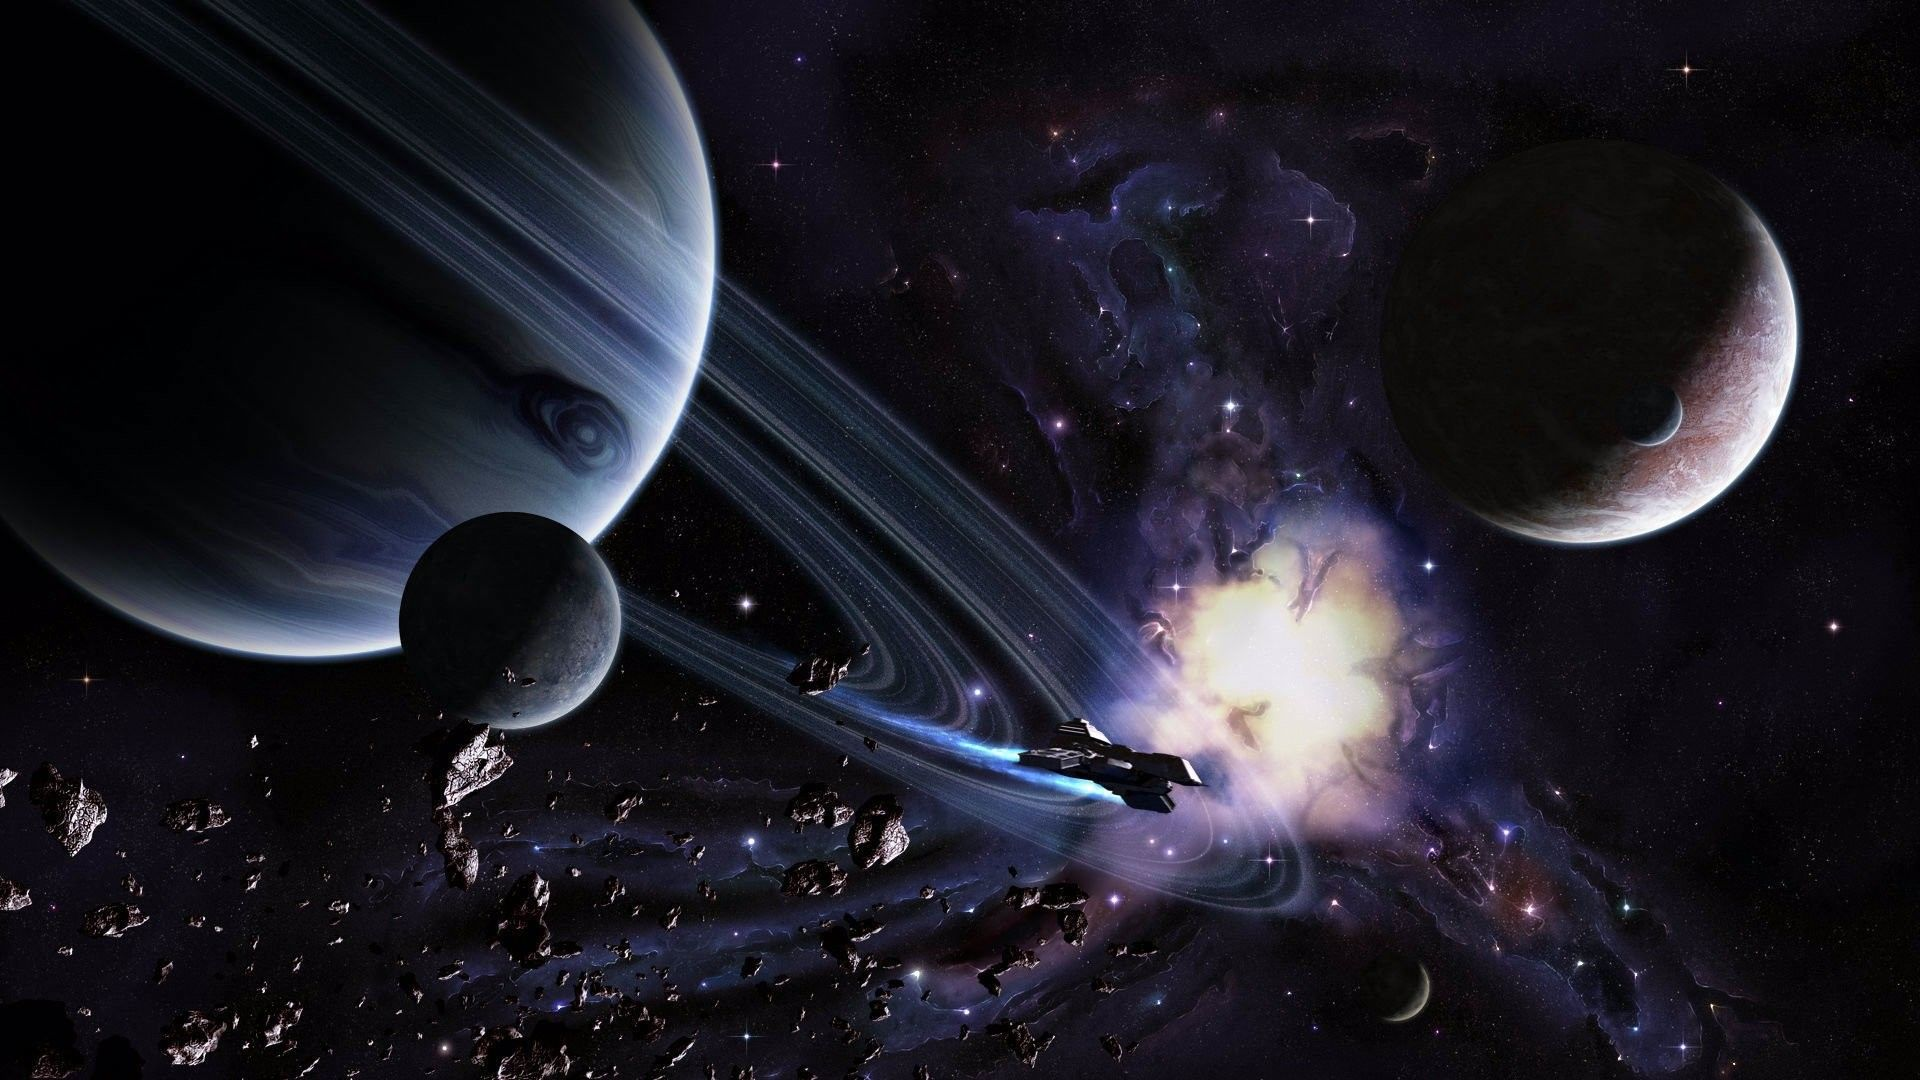 Cosmos Universe Wallpapers Top Free Cosmos Universe Backgrounds